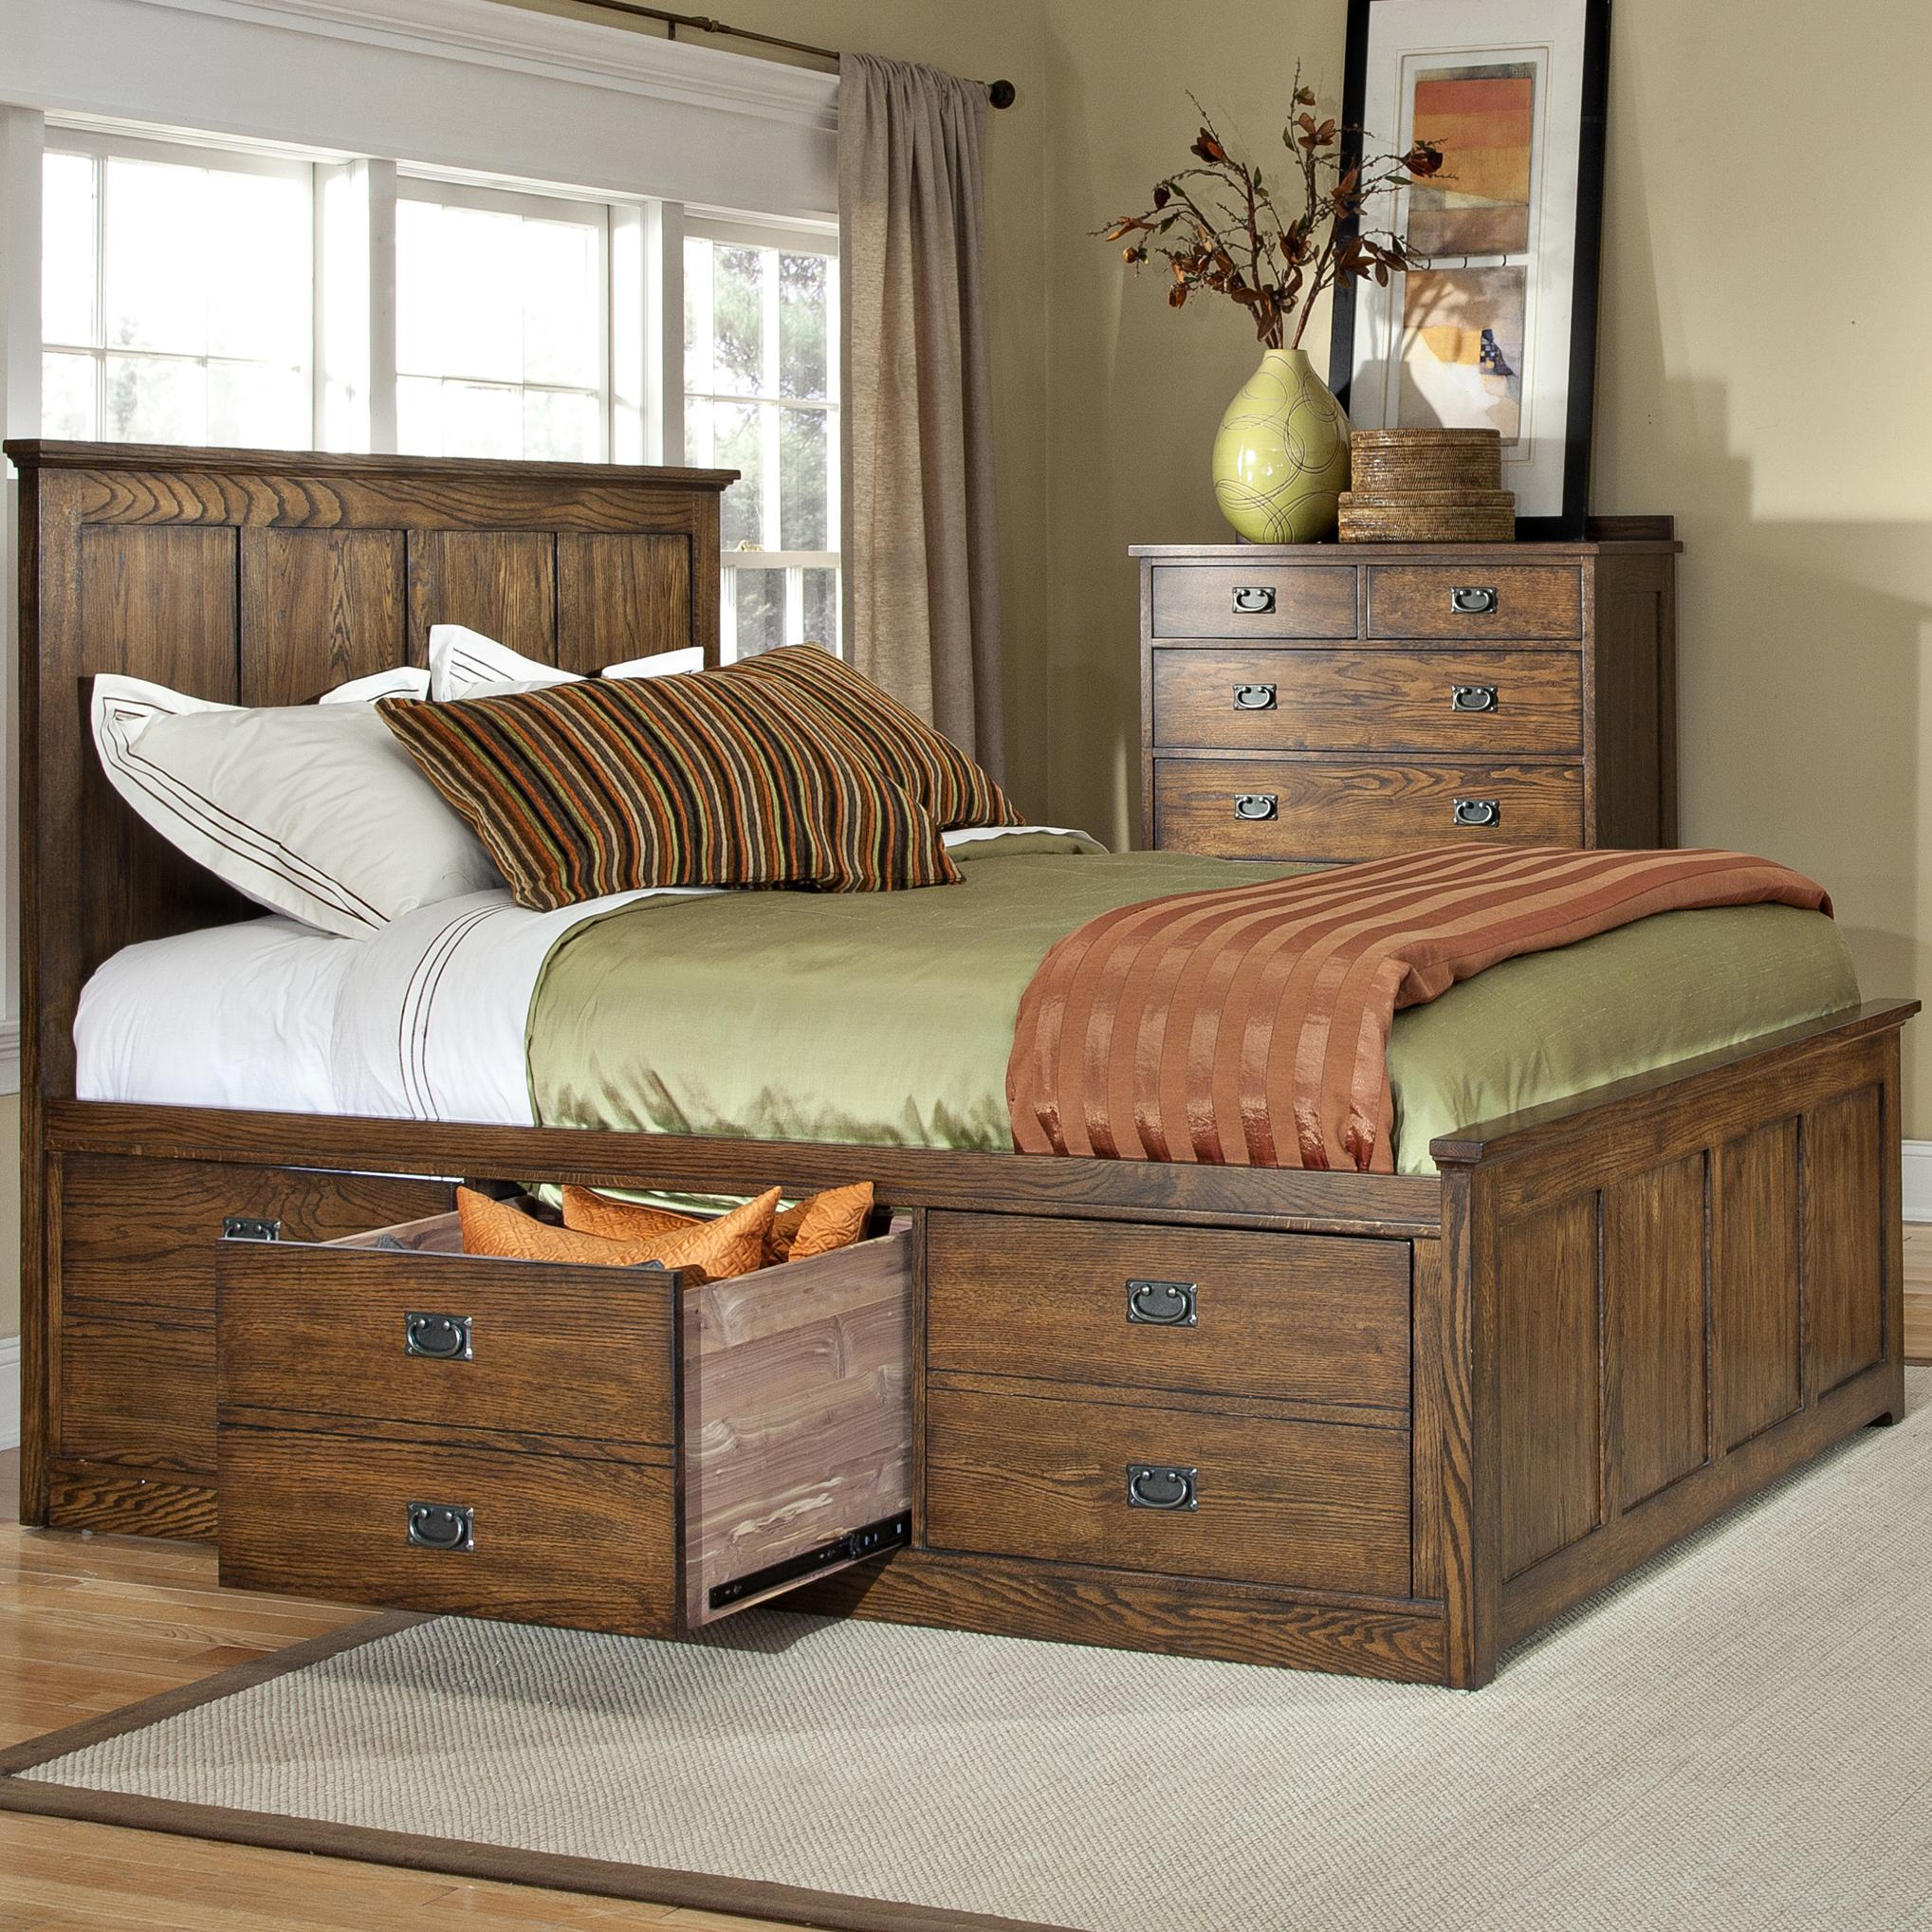 Queen Bed with 6 StorageDrawers